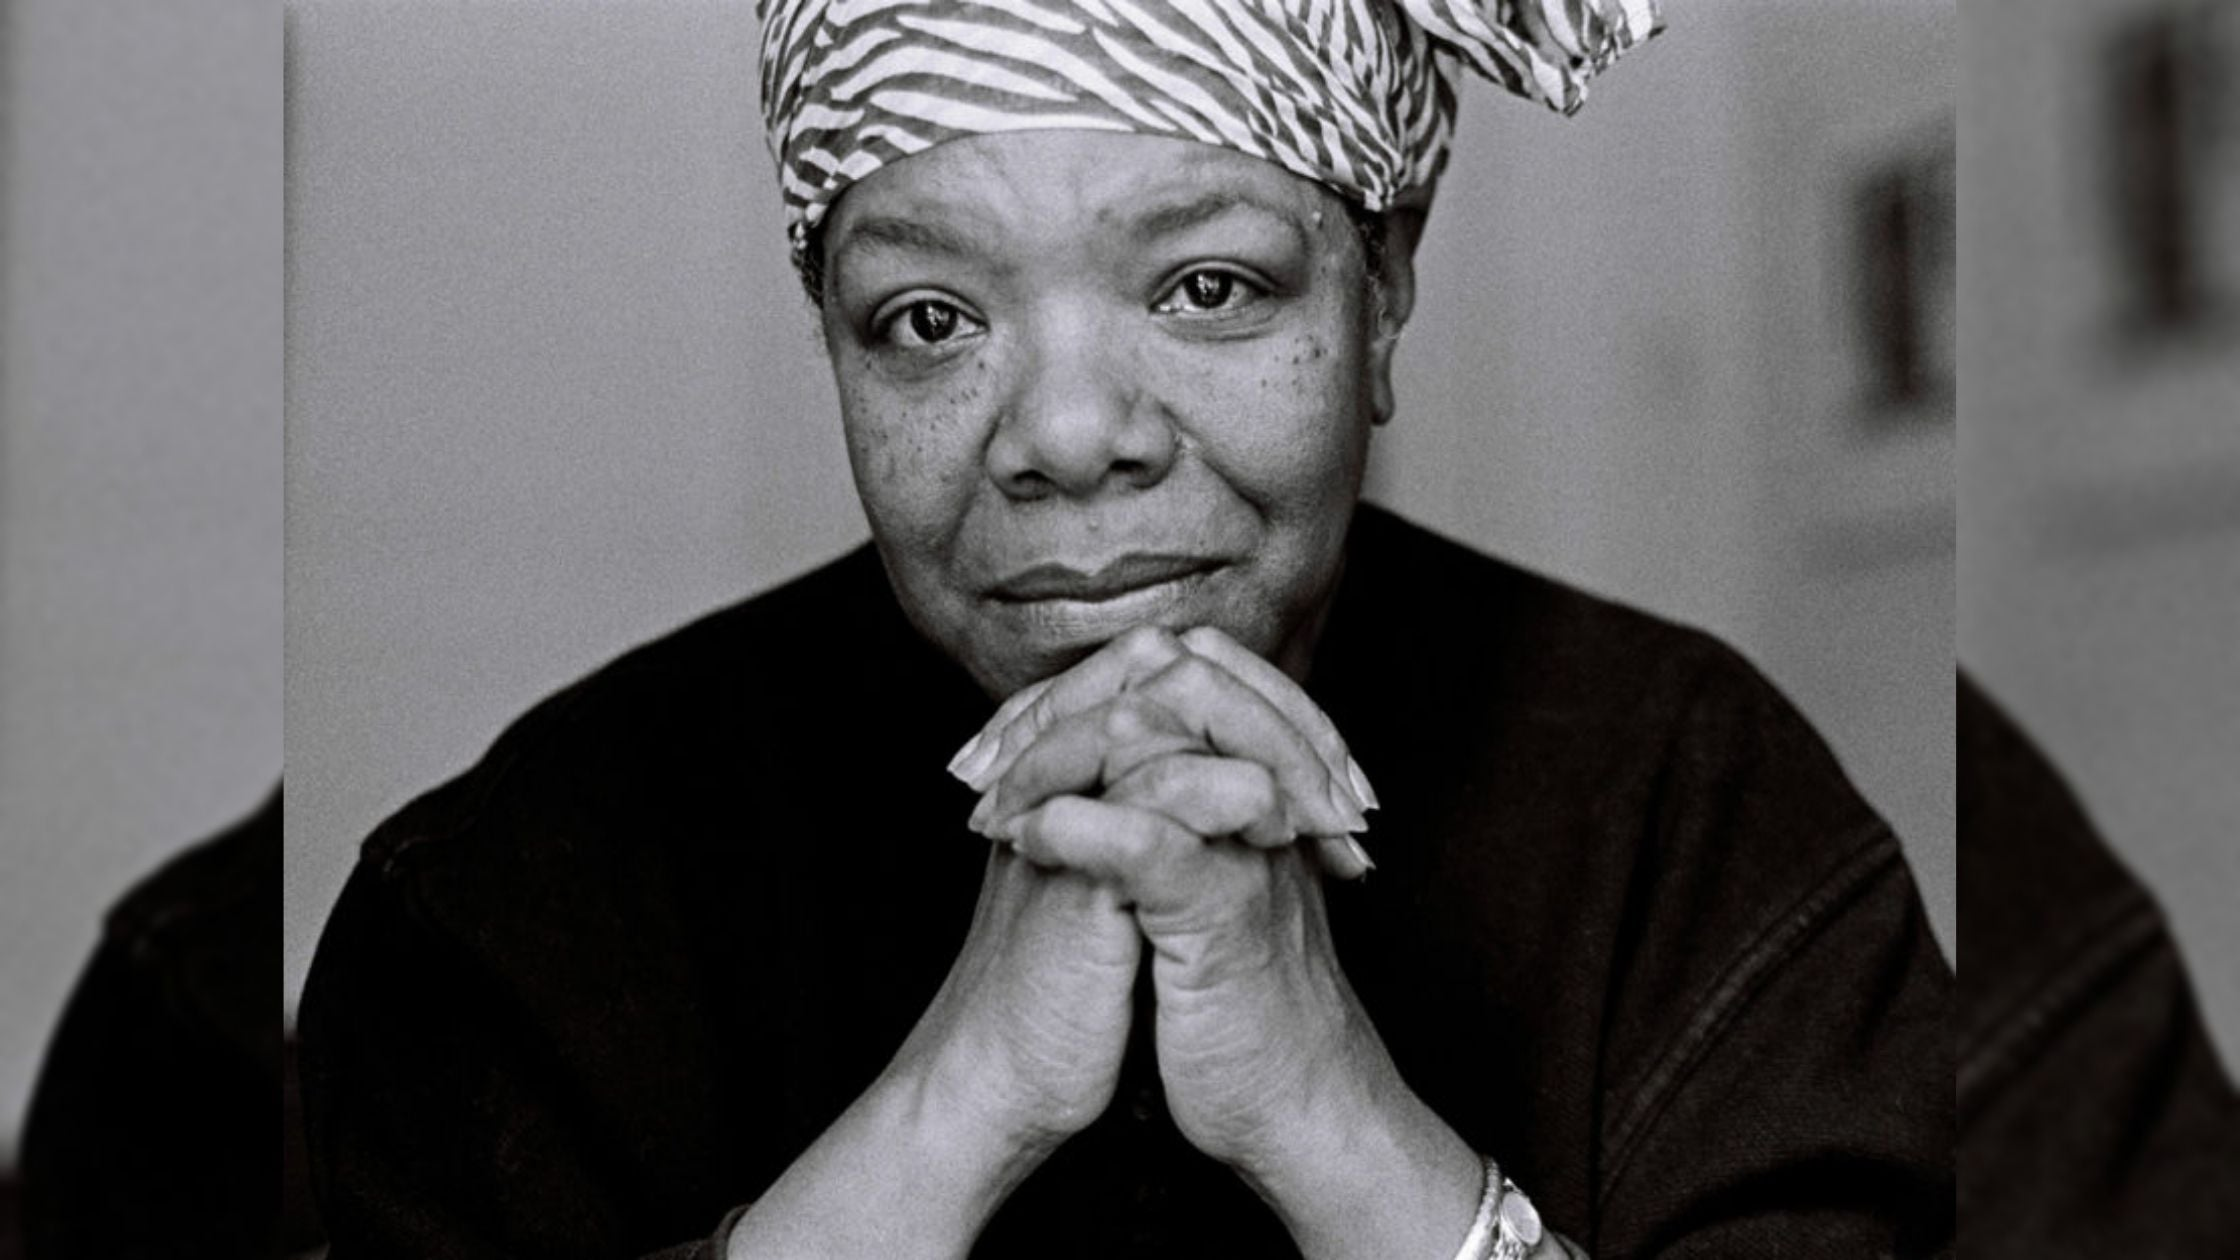 Maya Angelou: The Black Woman Who Could Not be Moved